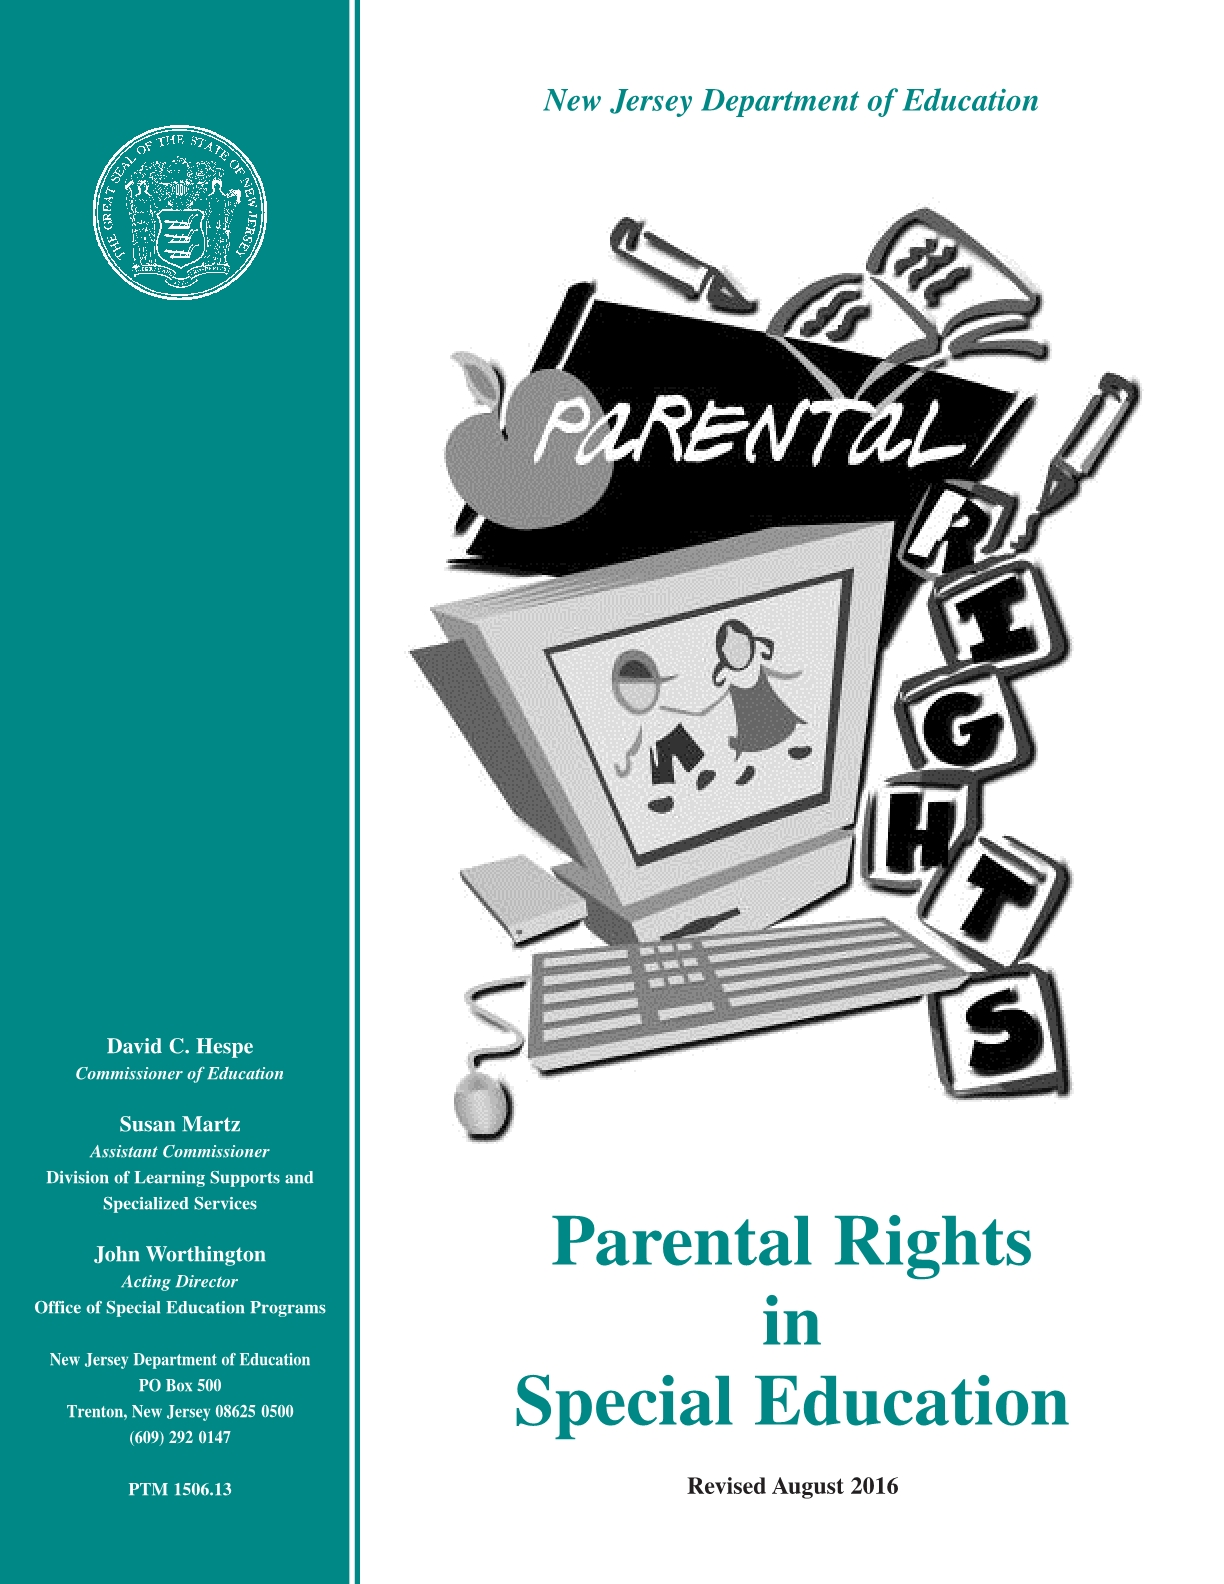 Parental Rights in Special Education (PRISE)